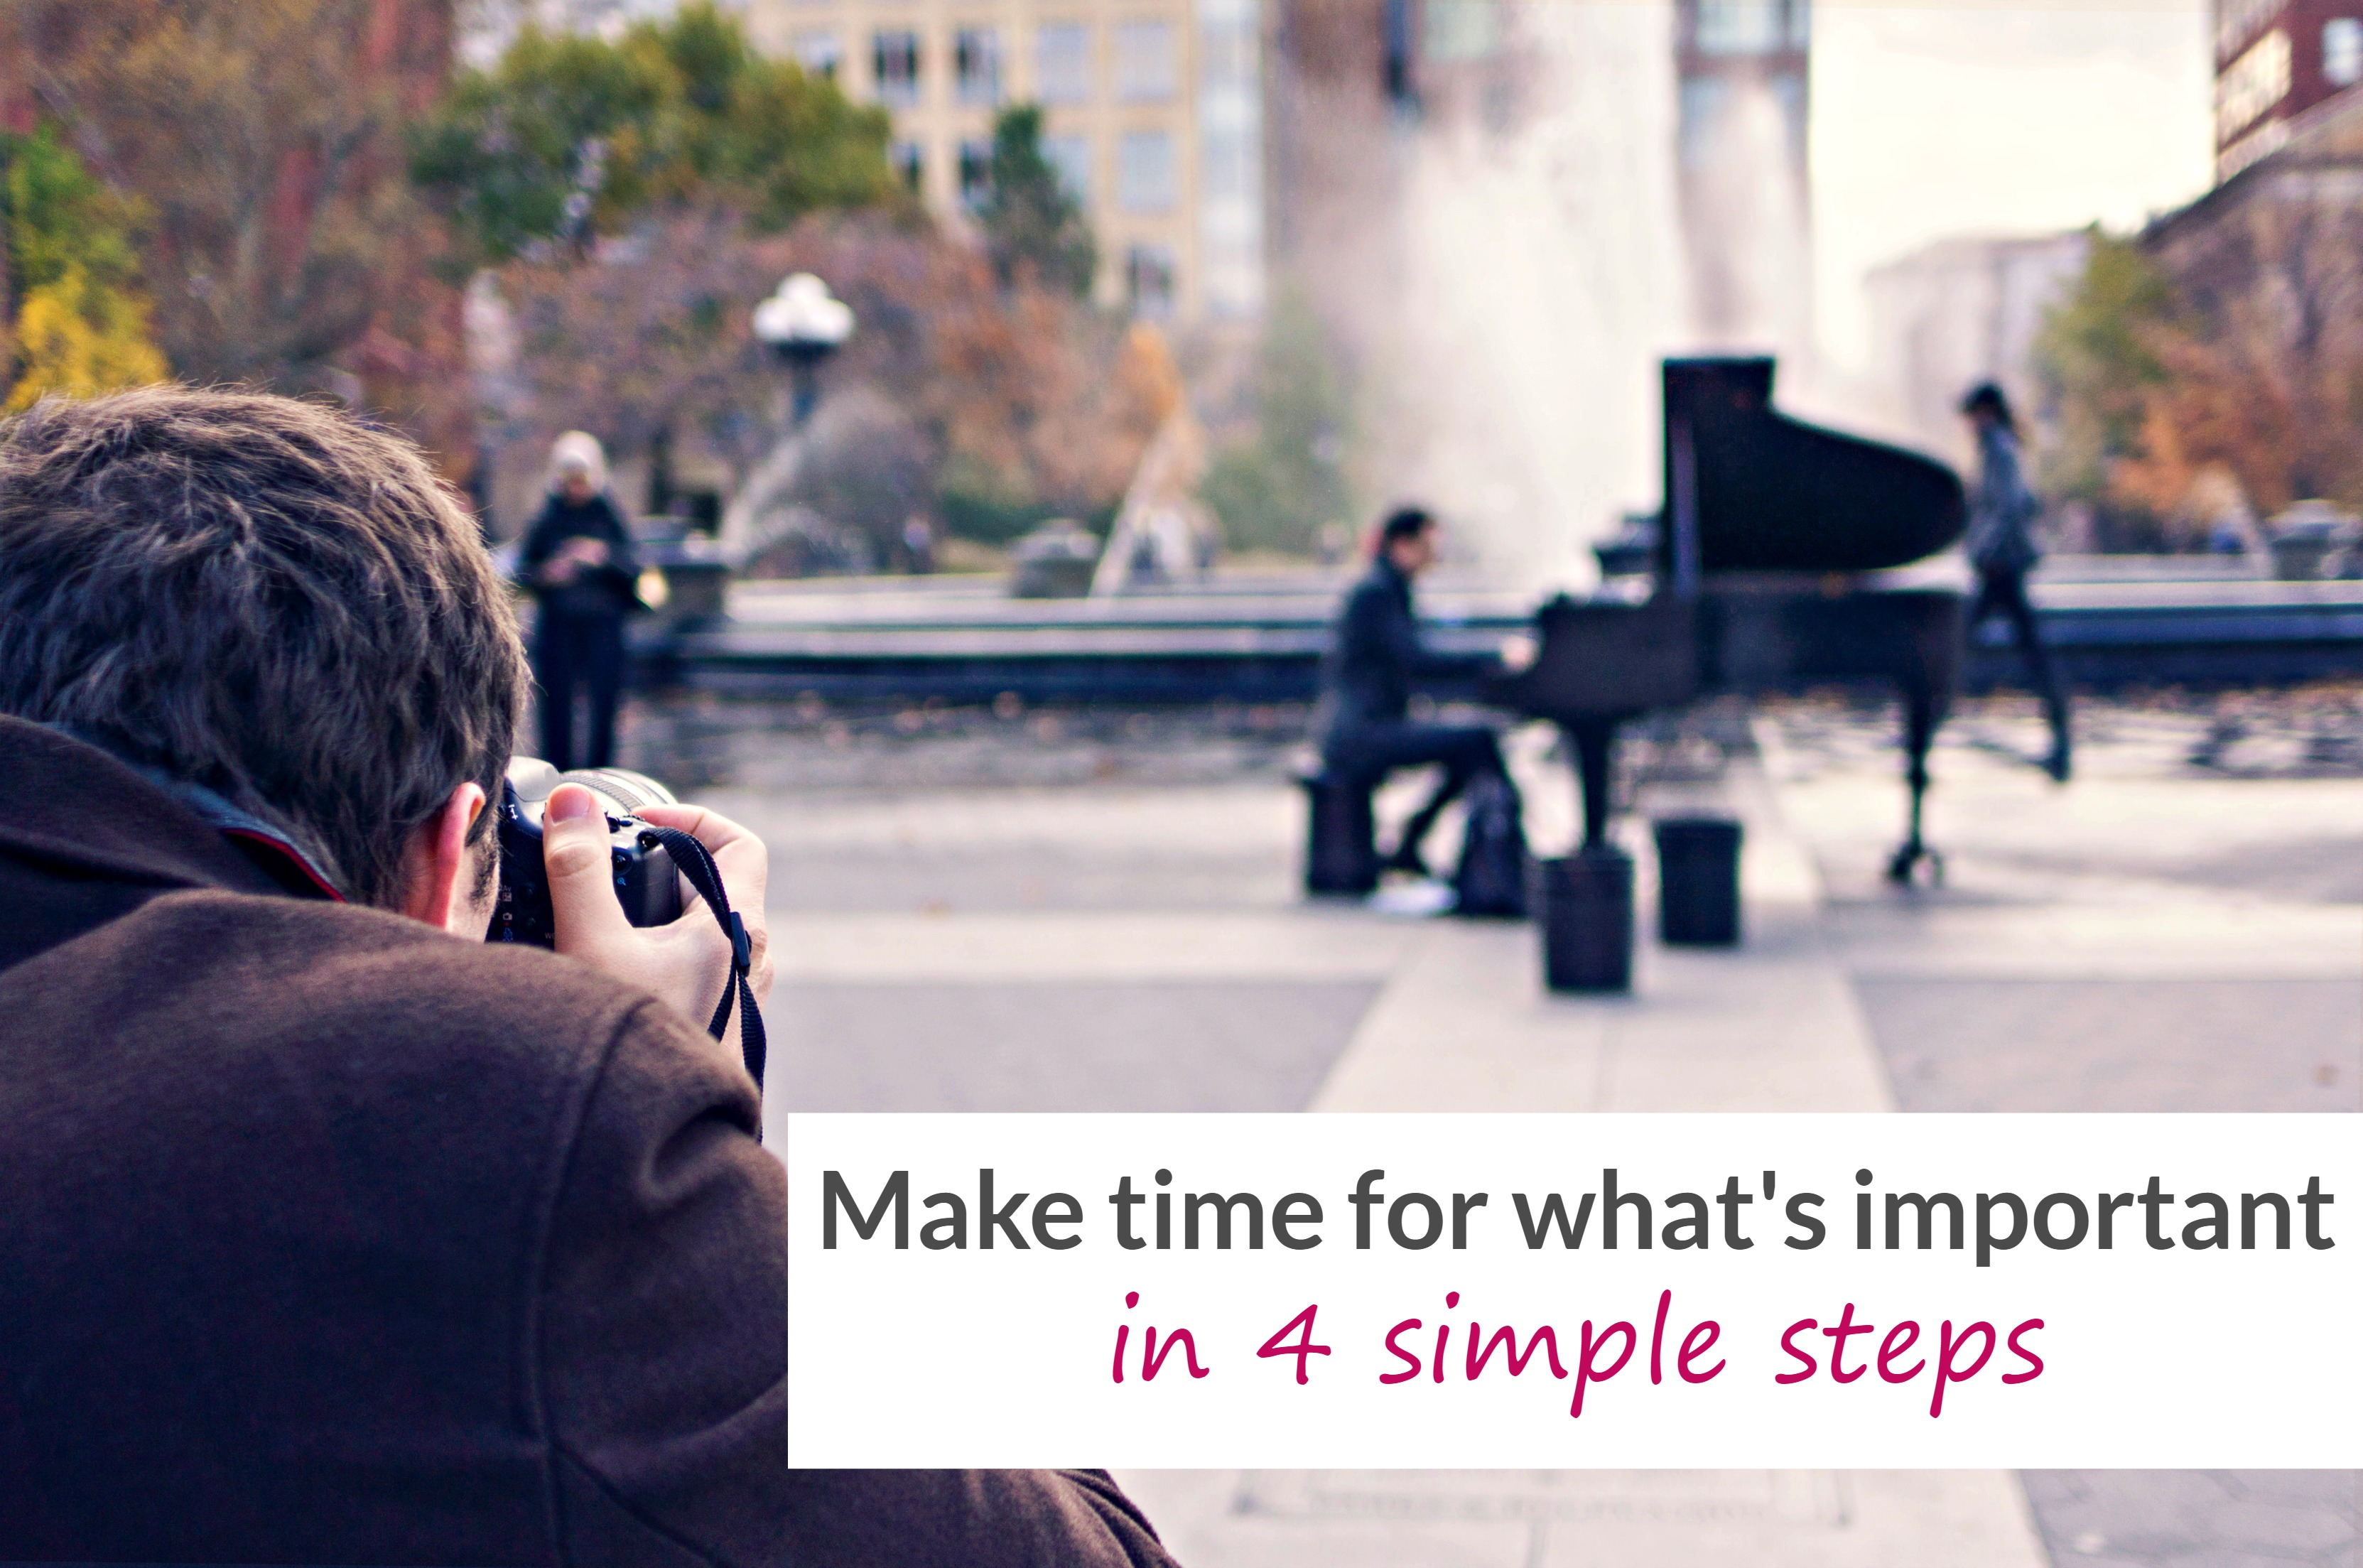 Make time for what's important in 4 simple steps